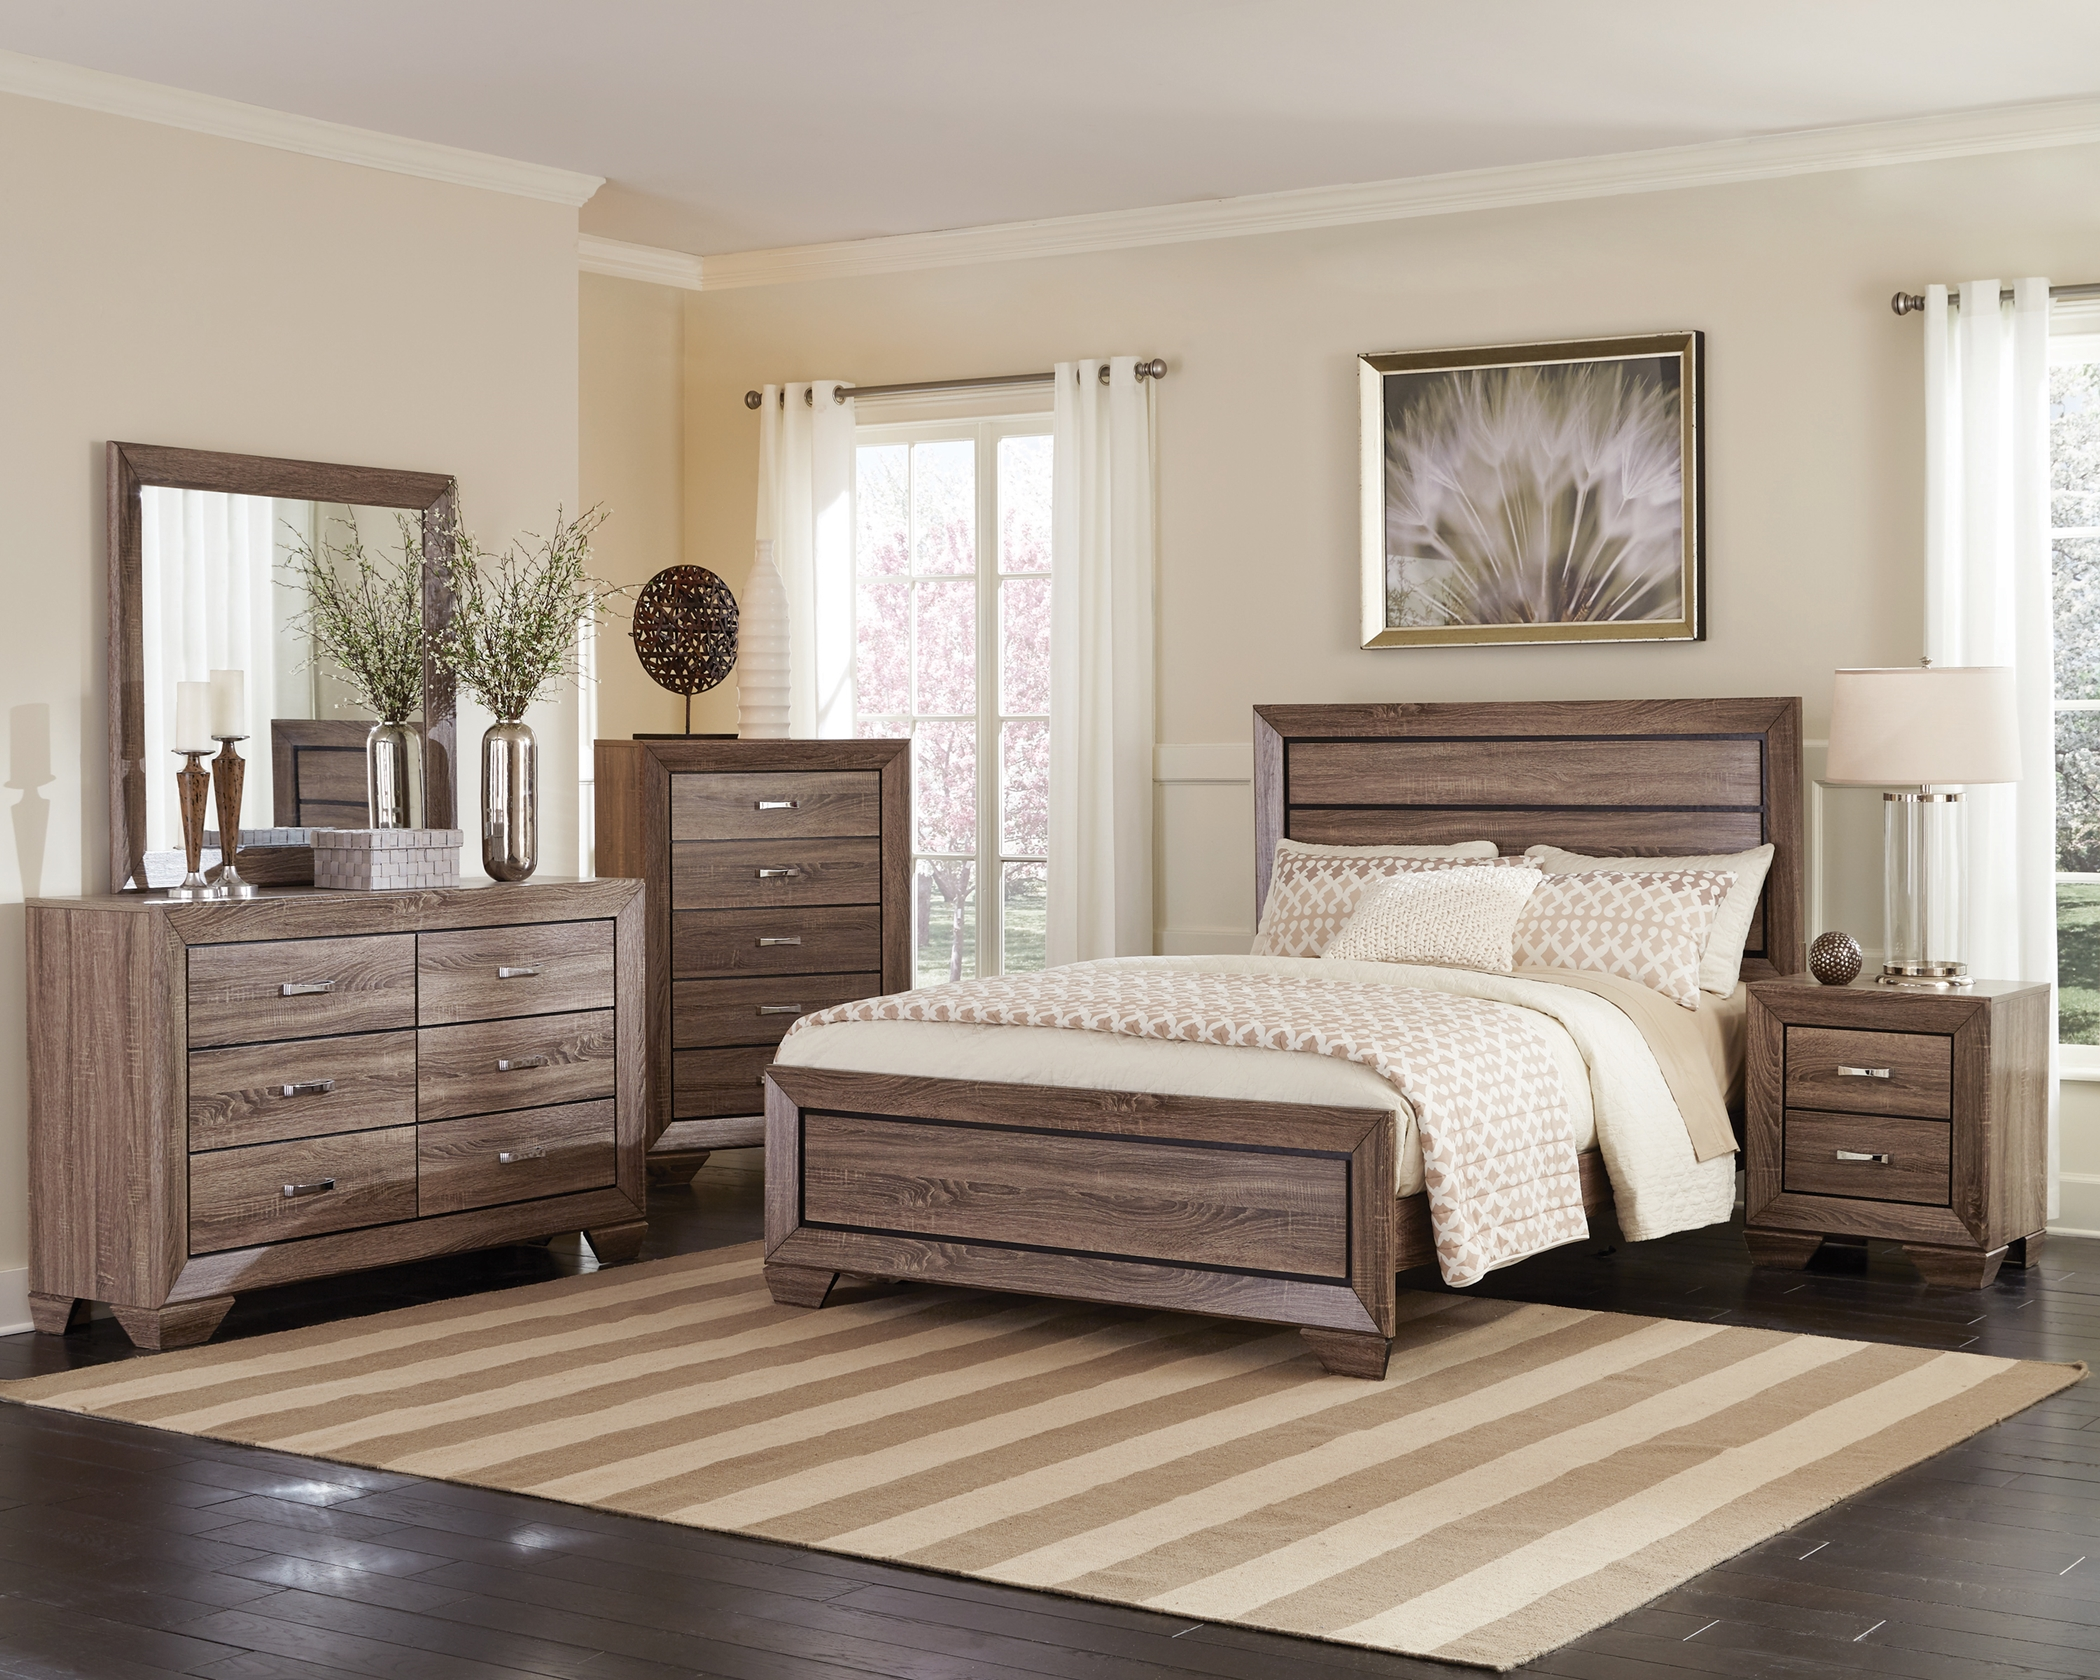 Kauffman Washed Taupe Queen 5-Pc.